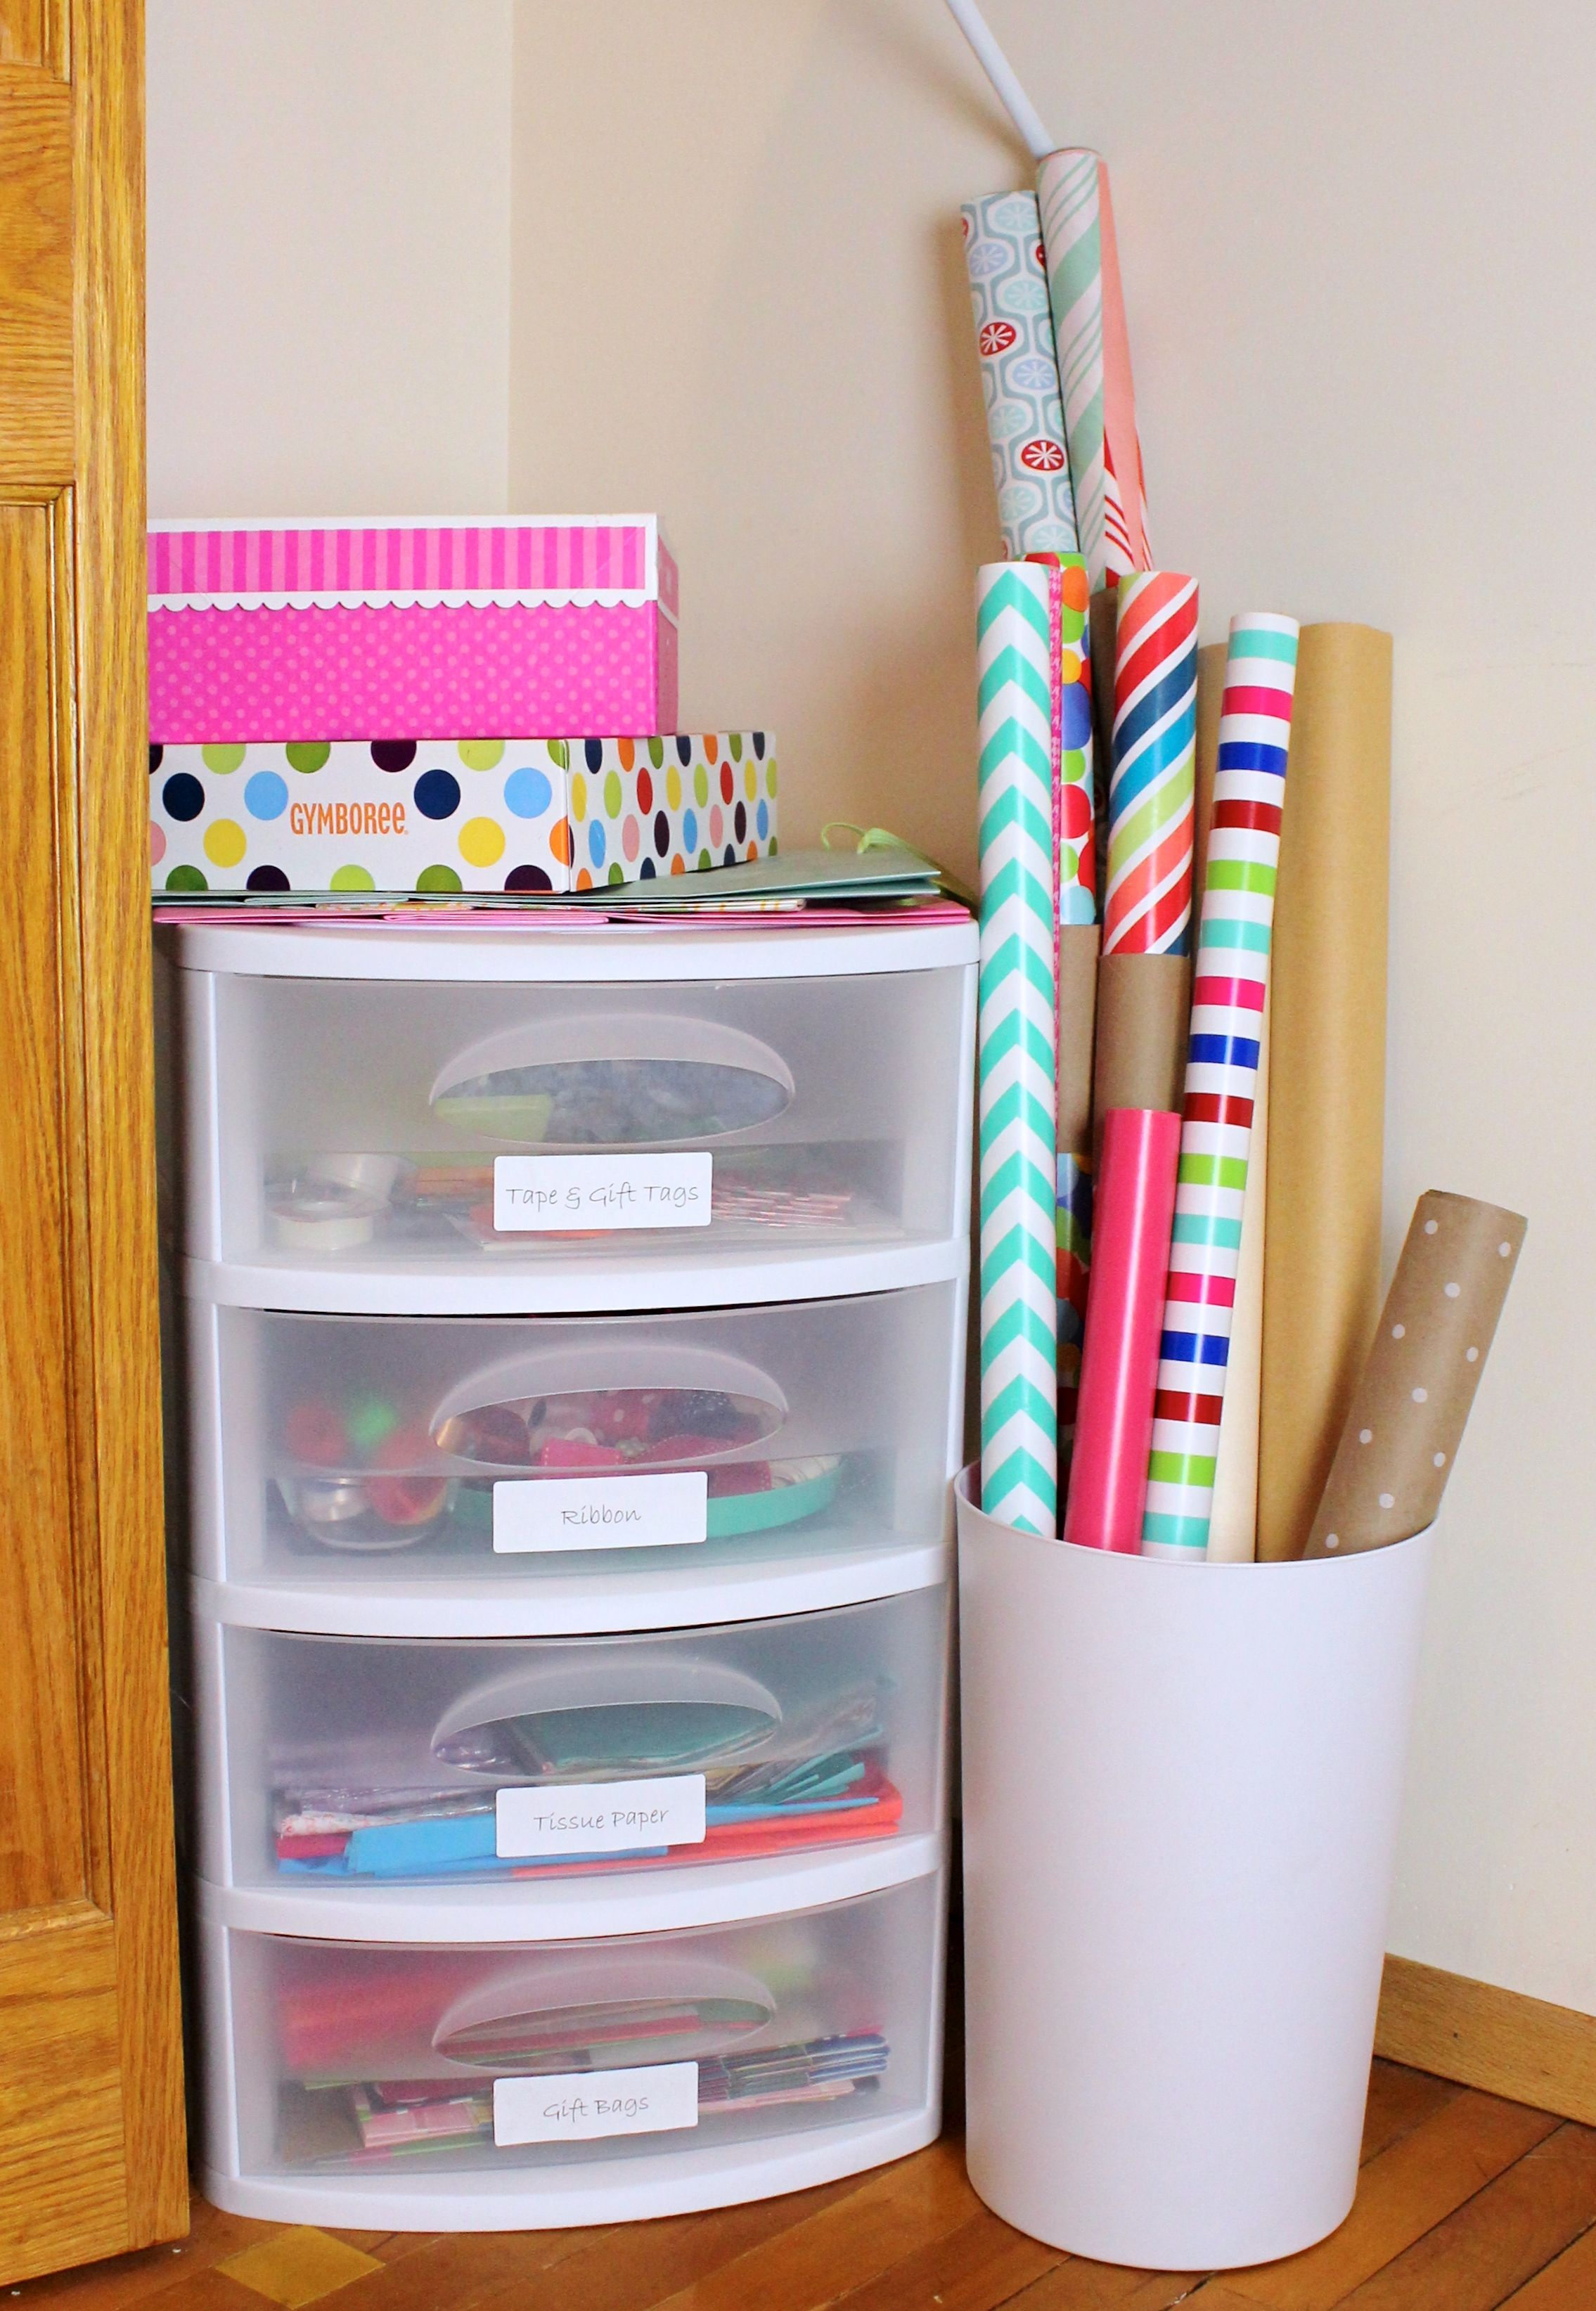 Create a perfectly functionally gift wrapping station in a space as tiny as a corner in your closet!